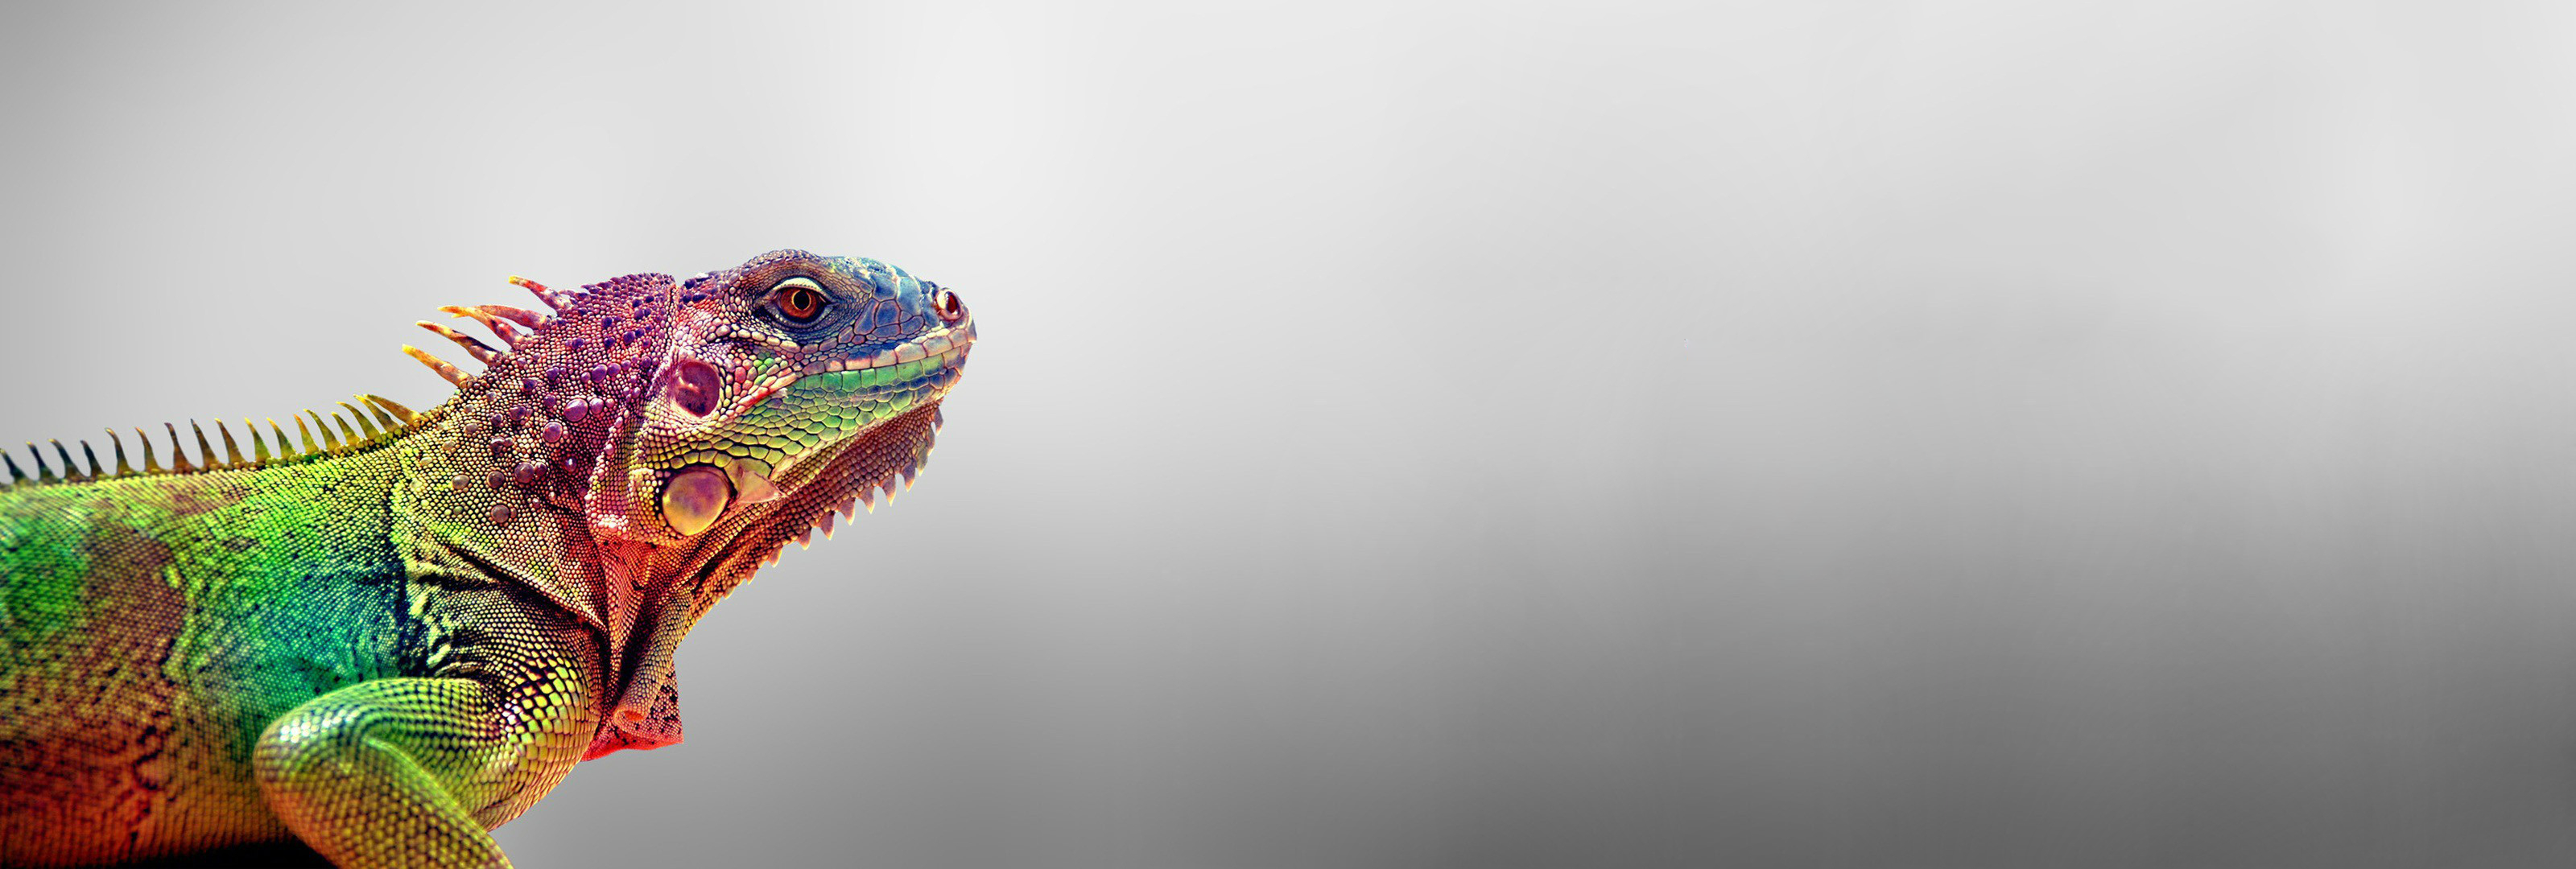 lizard full hd wallpaper and background image | 3200x1080 | id:321356